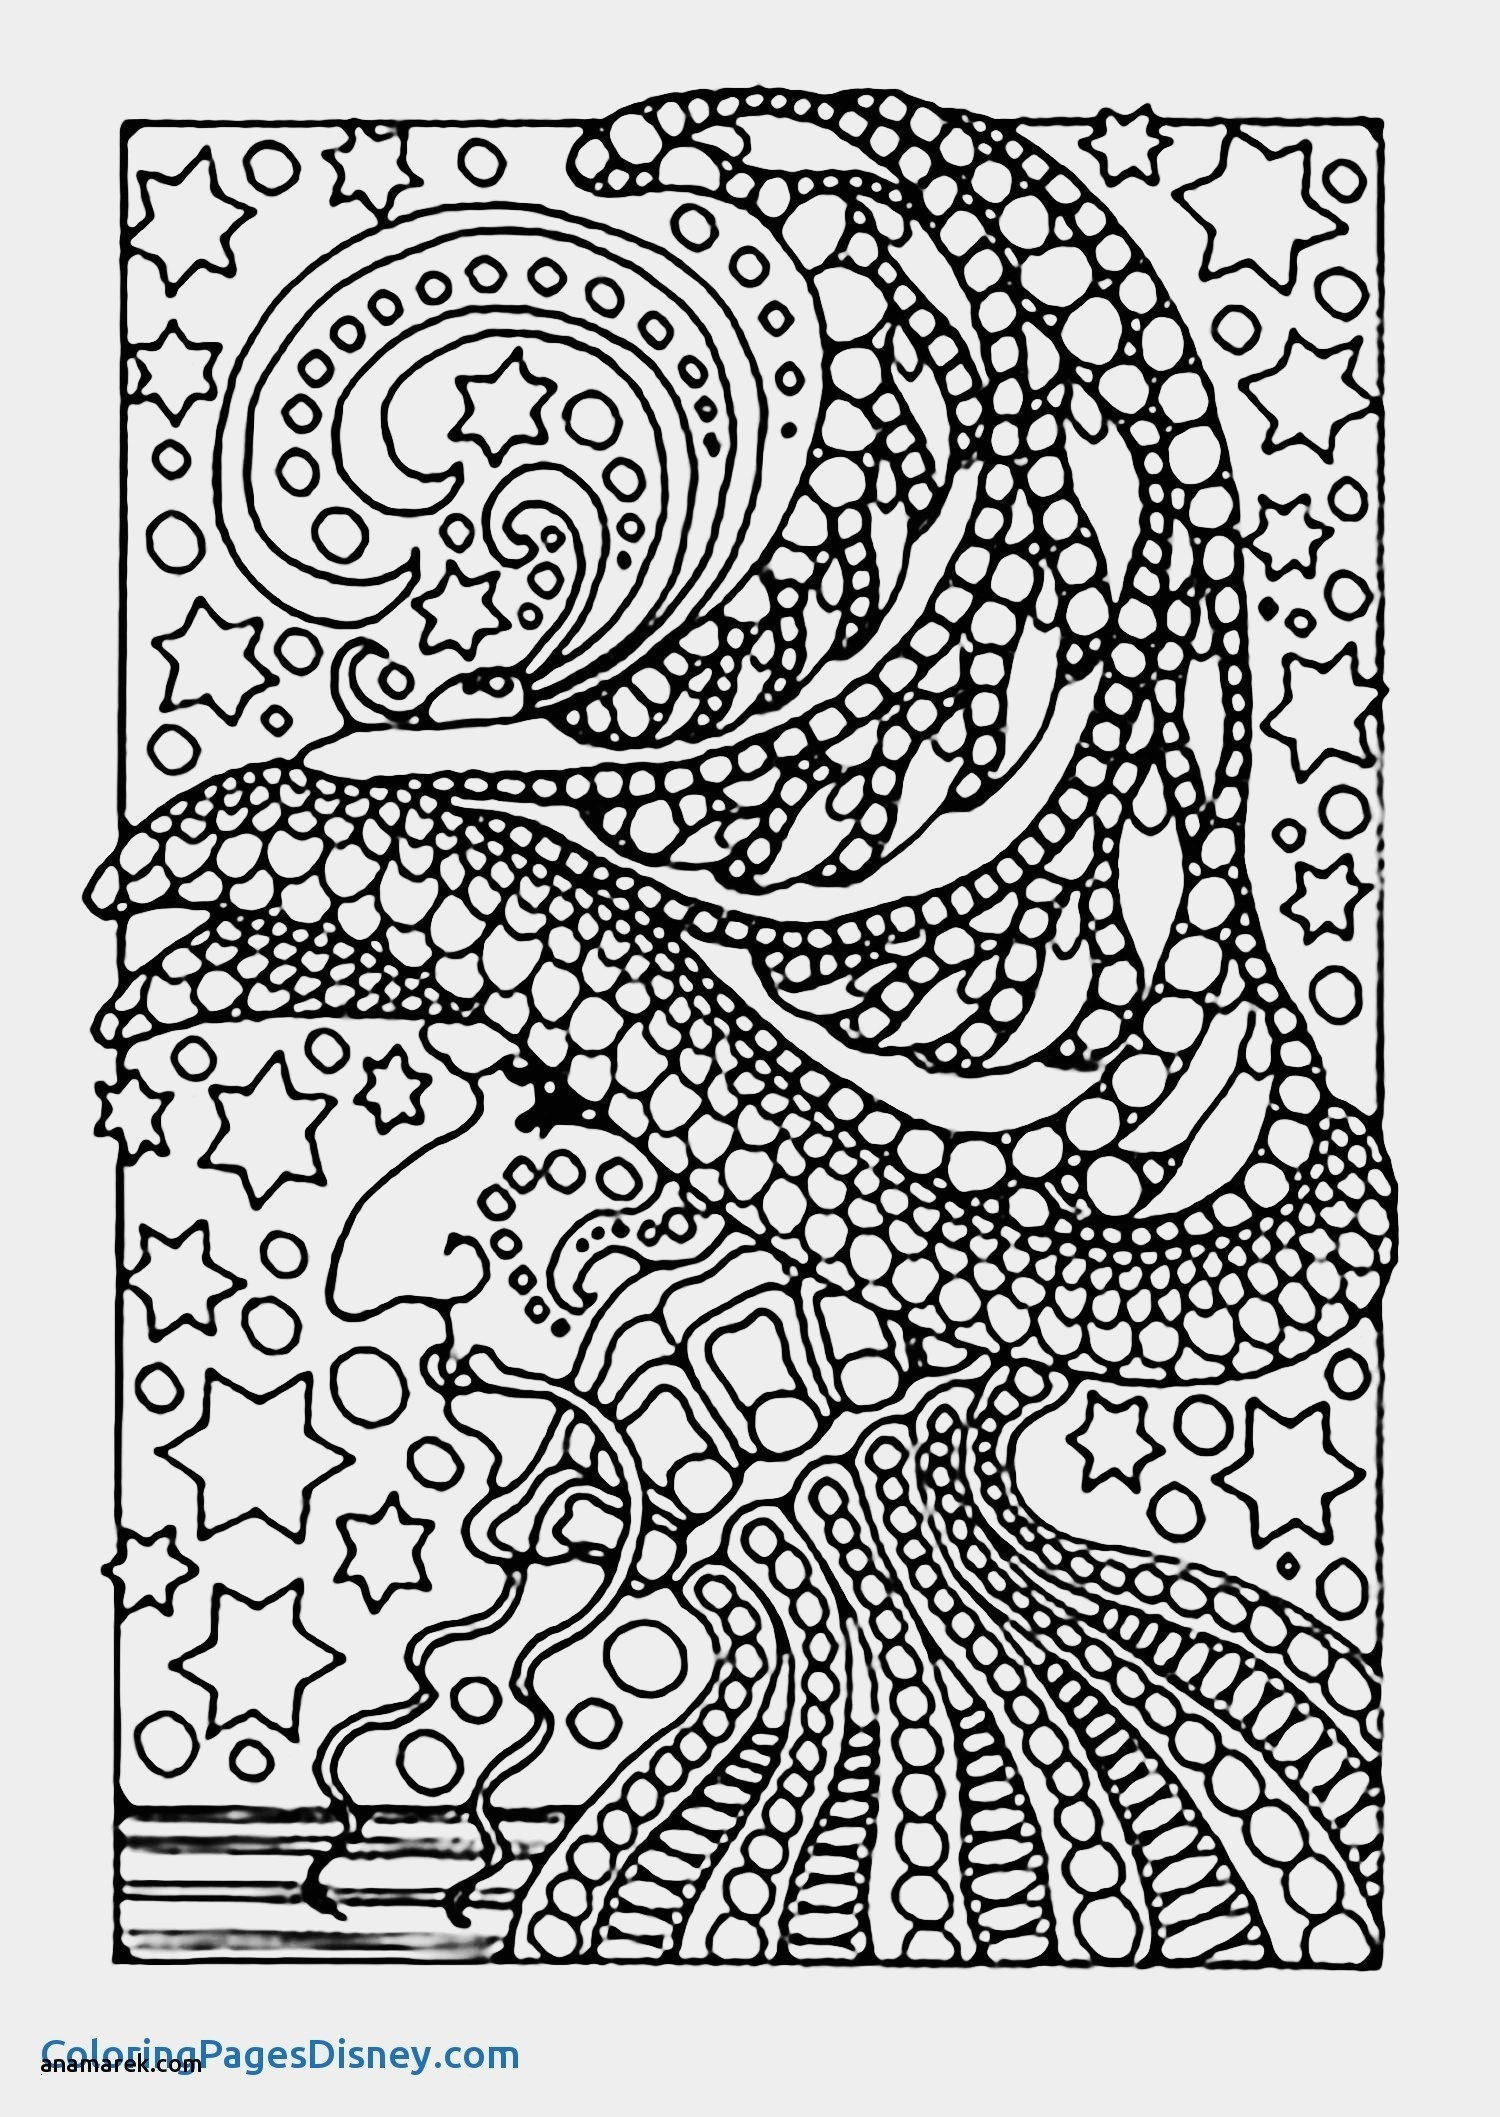 Sacagawea Coloring Pages  to Print 3k - Free For Children